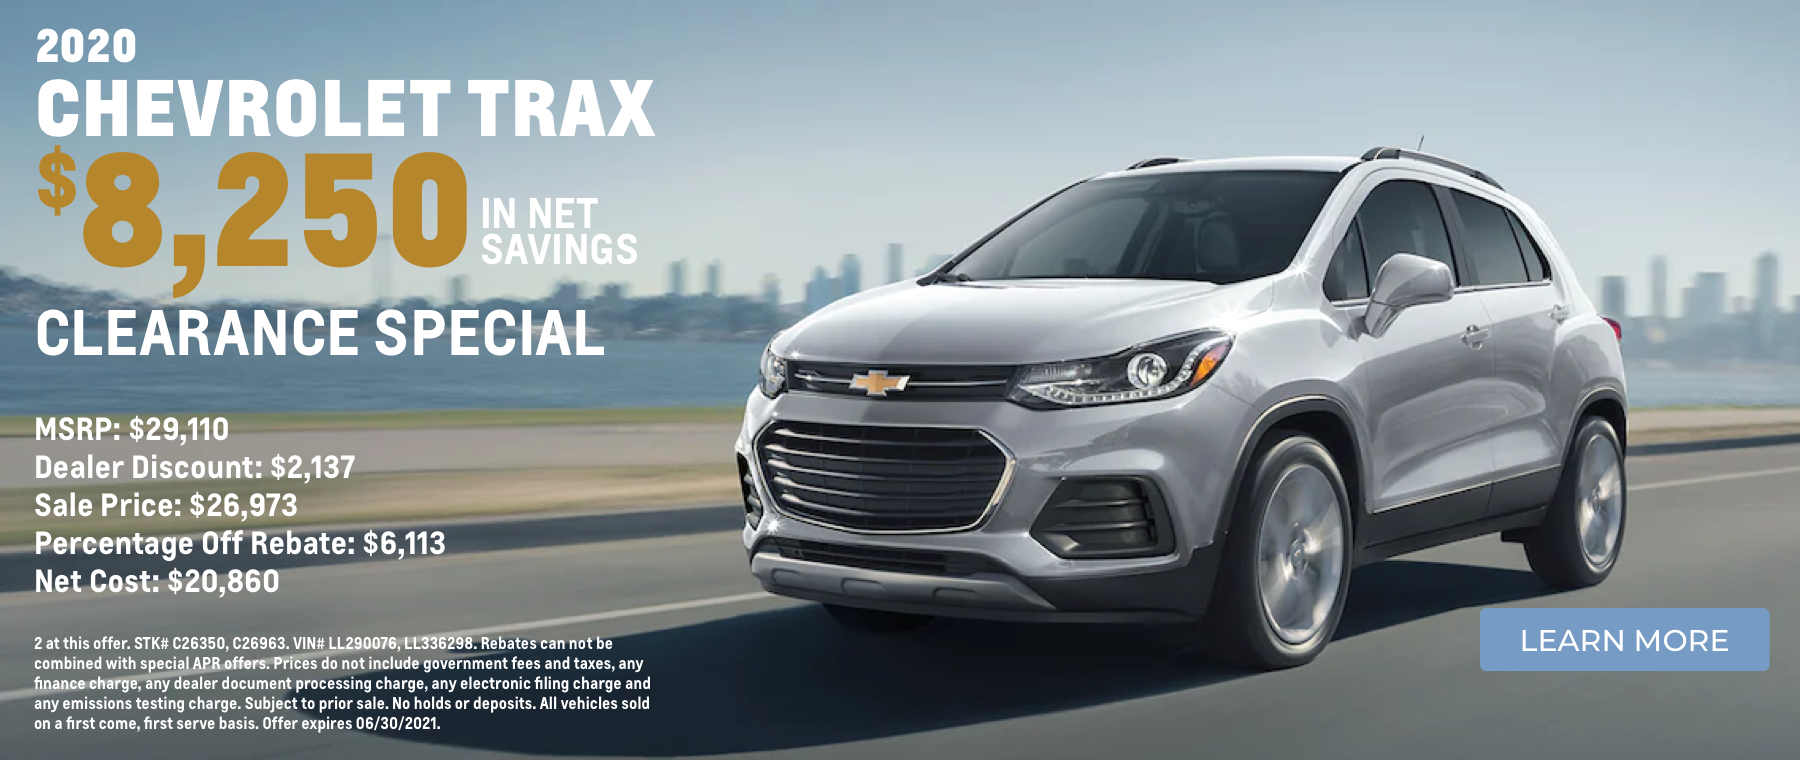 2020 Chevy Trax Special